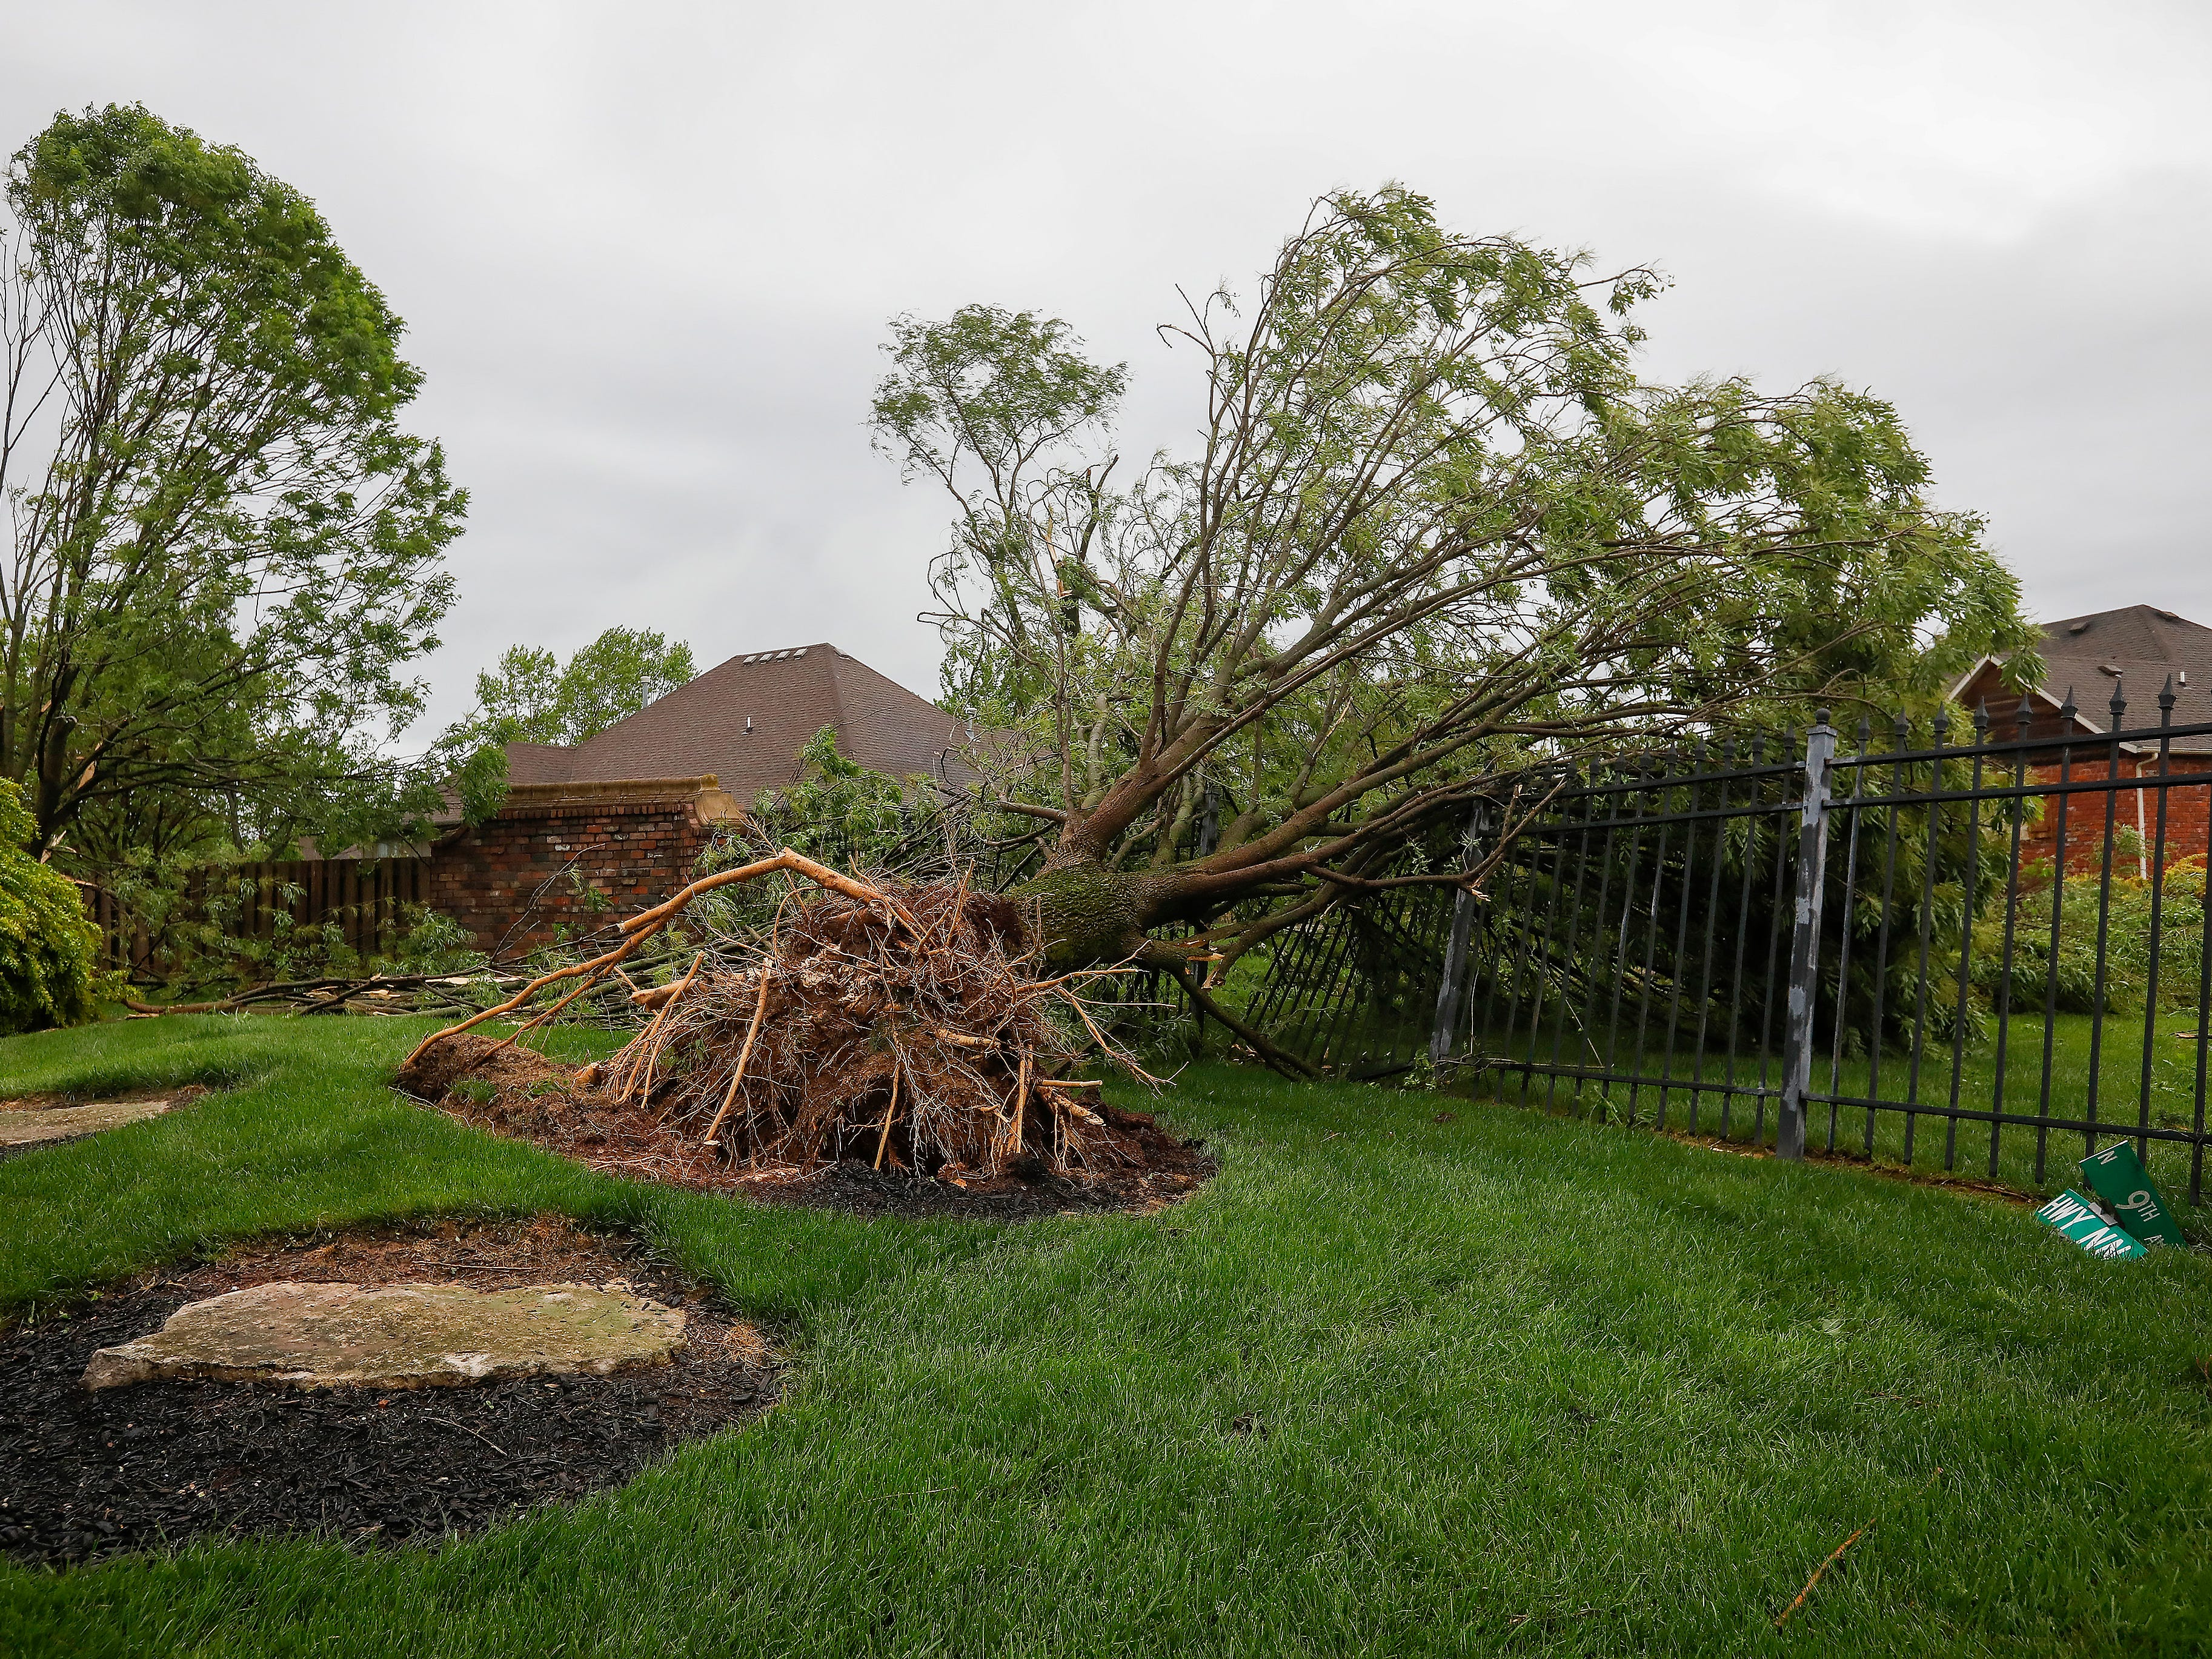 Homes and trees in the Waterford neighborhood were damaged by a likely tornado moved through the Ozark on Tuesday April 30, 2019.